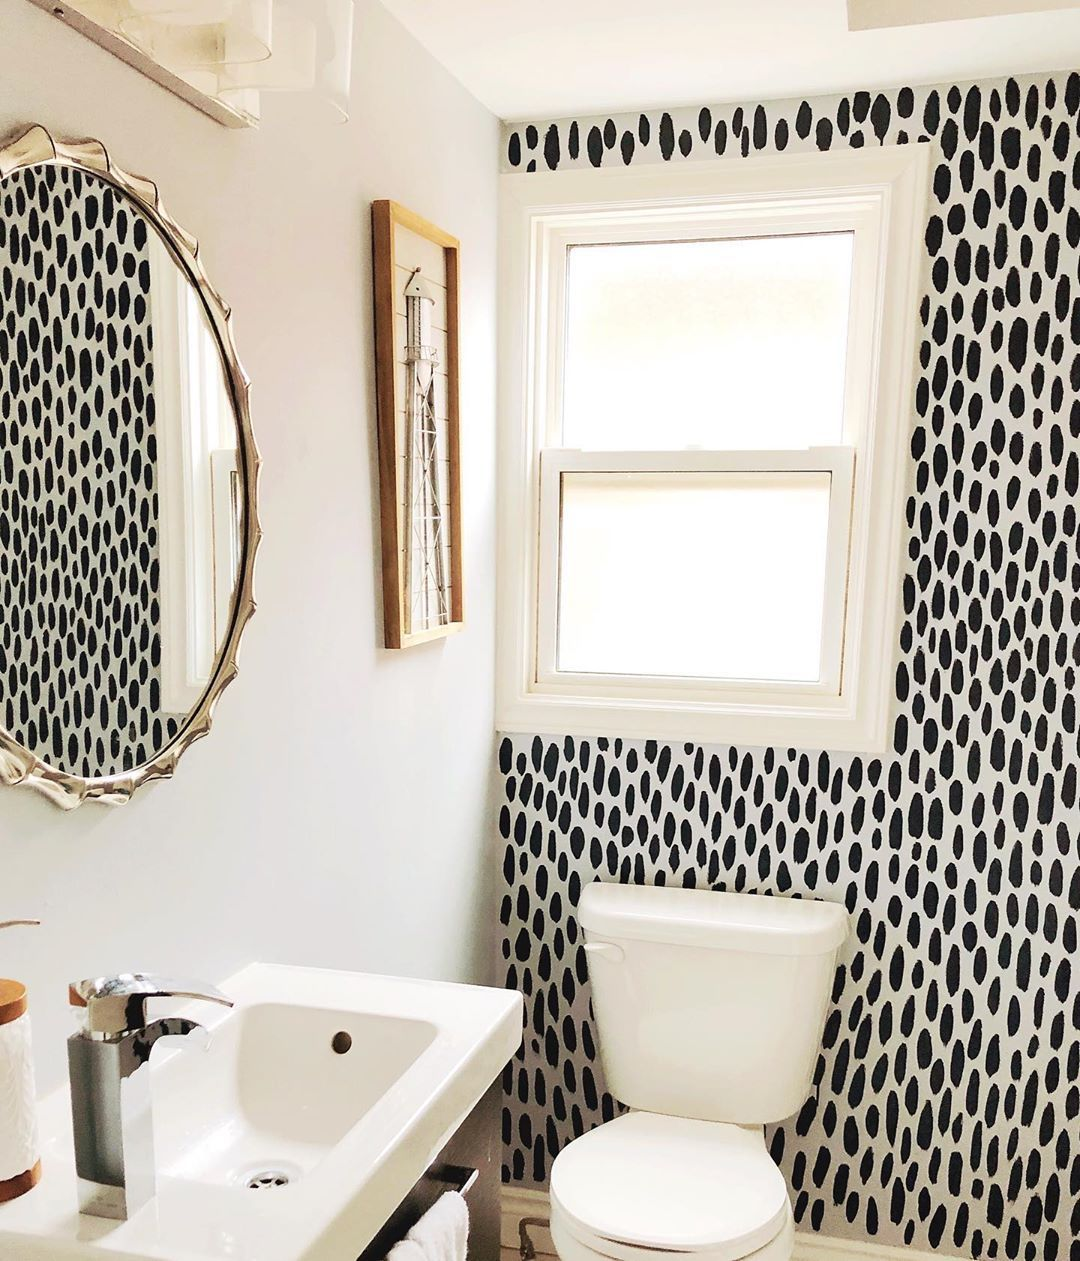 "Photo of Courtney Groen on Instagram: ""DIY Bathroom Accent Wall 》Swip 